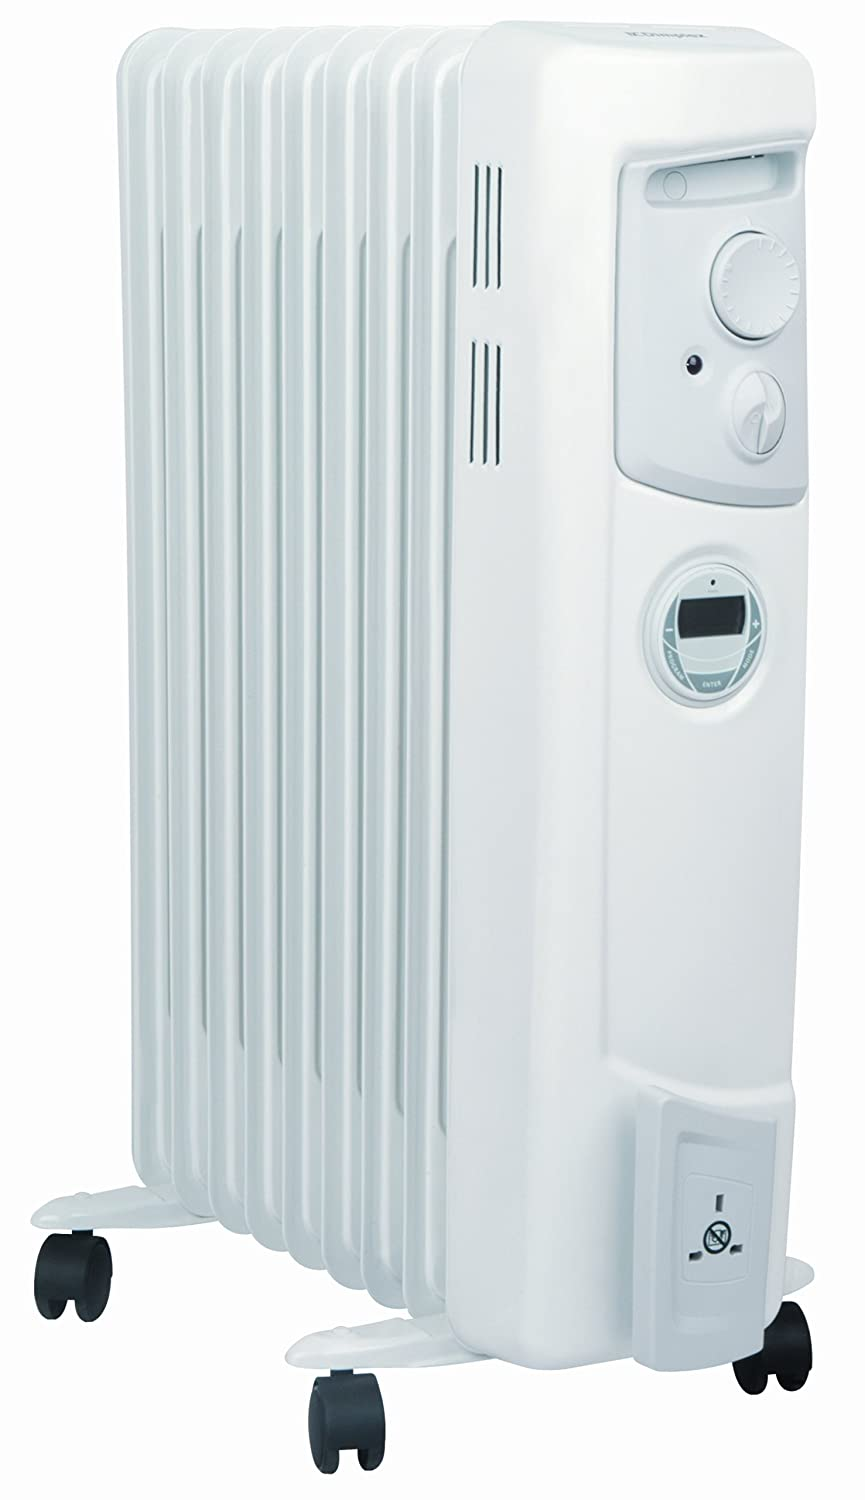 Dimplex 2 KW OFC2000Ti Electric Oil Filled Radiator Heater with ...